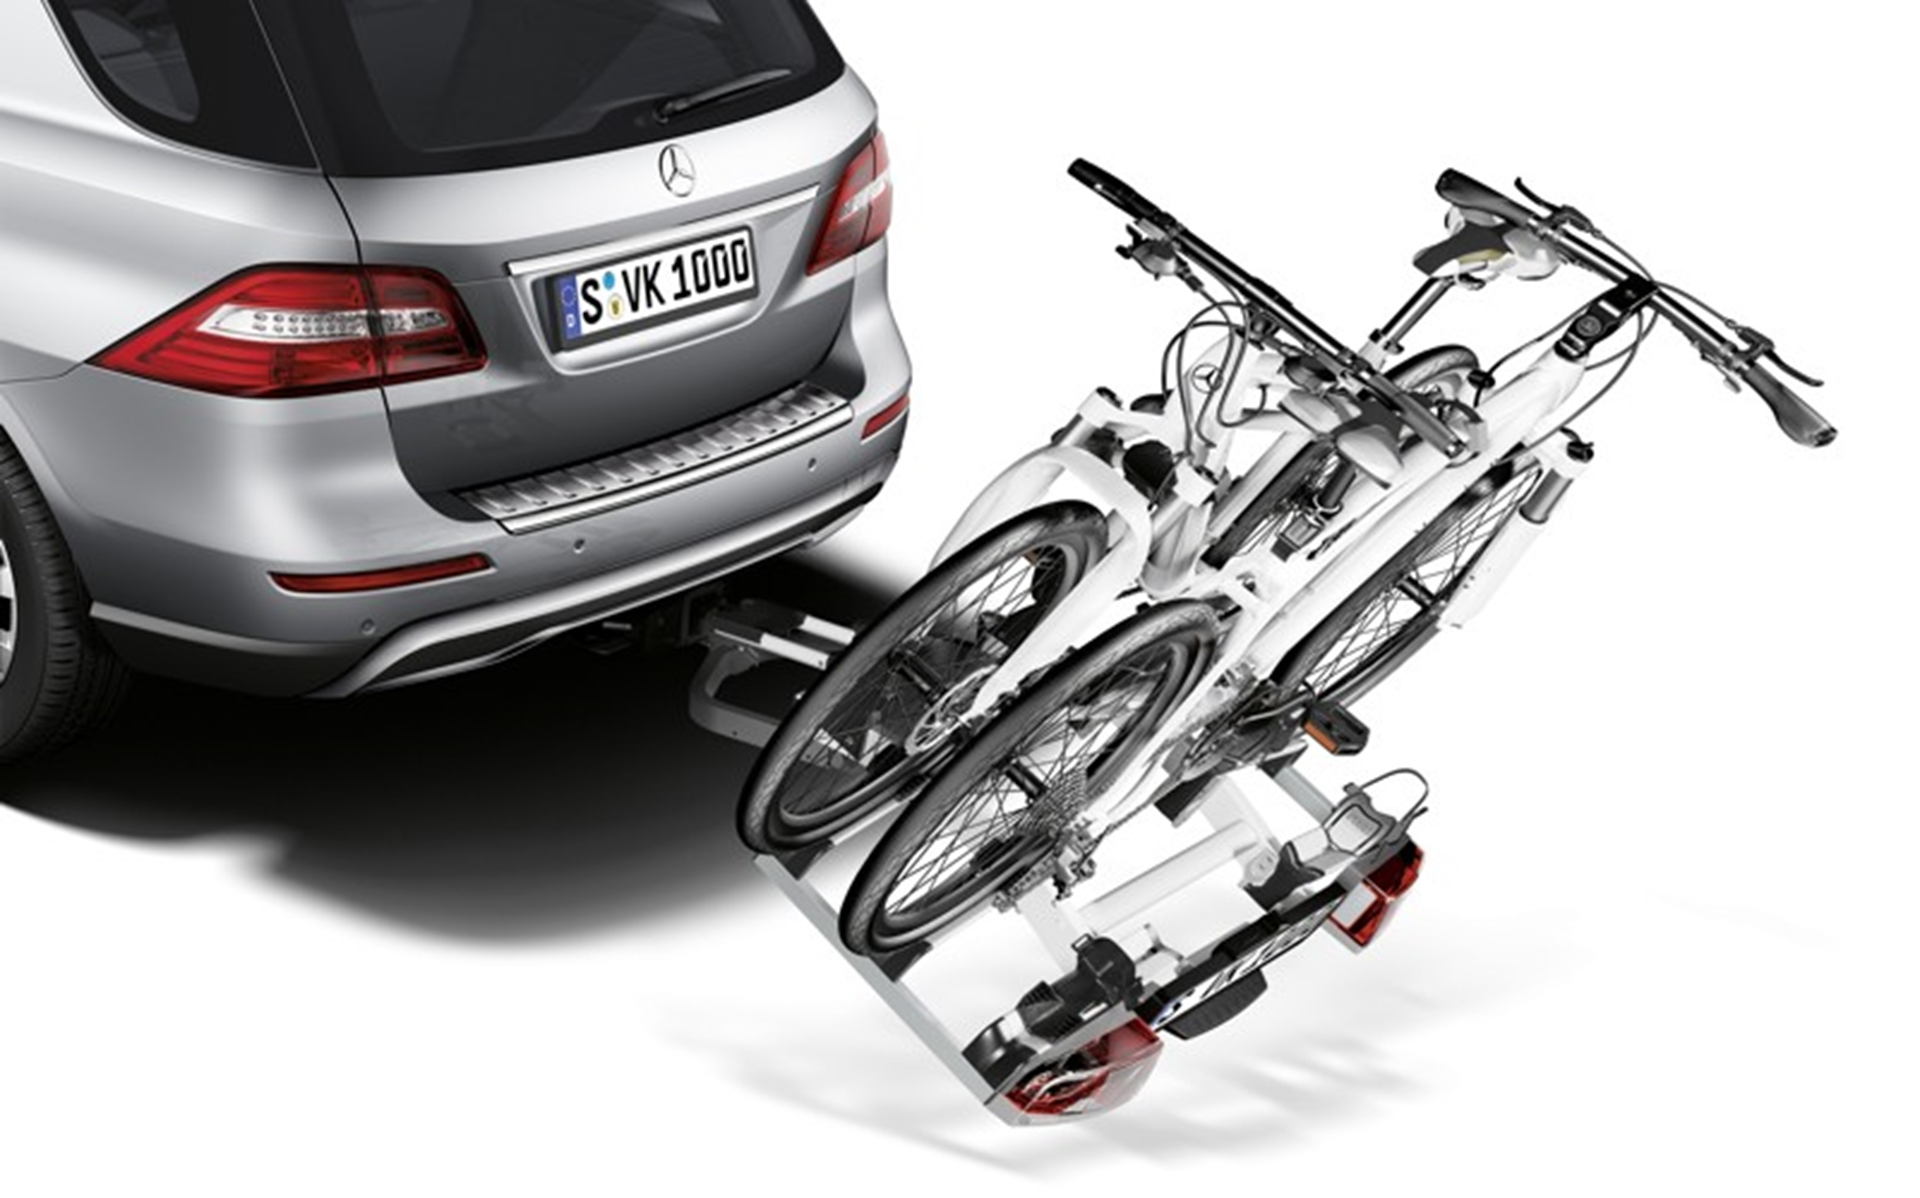 M-Class Rear mounted bicycle rack